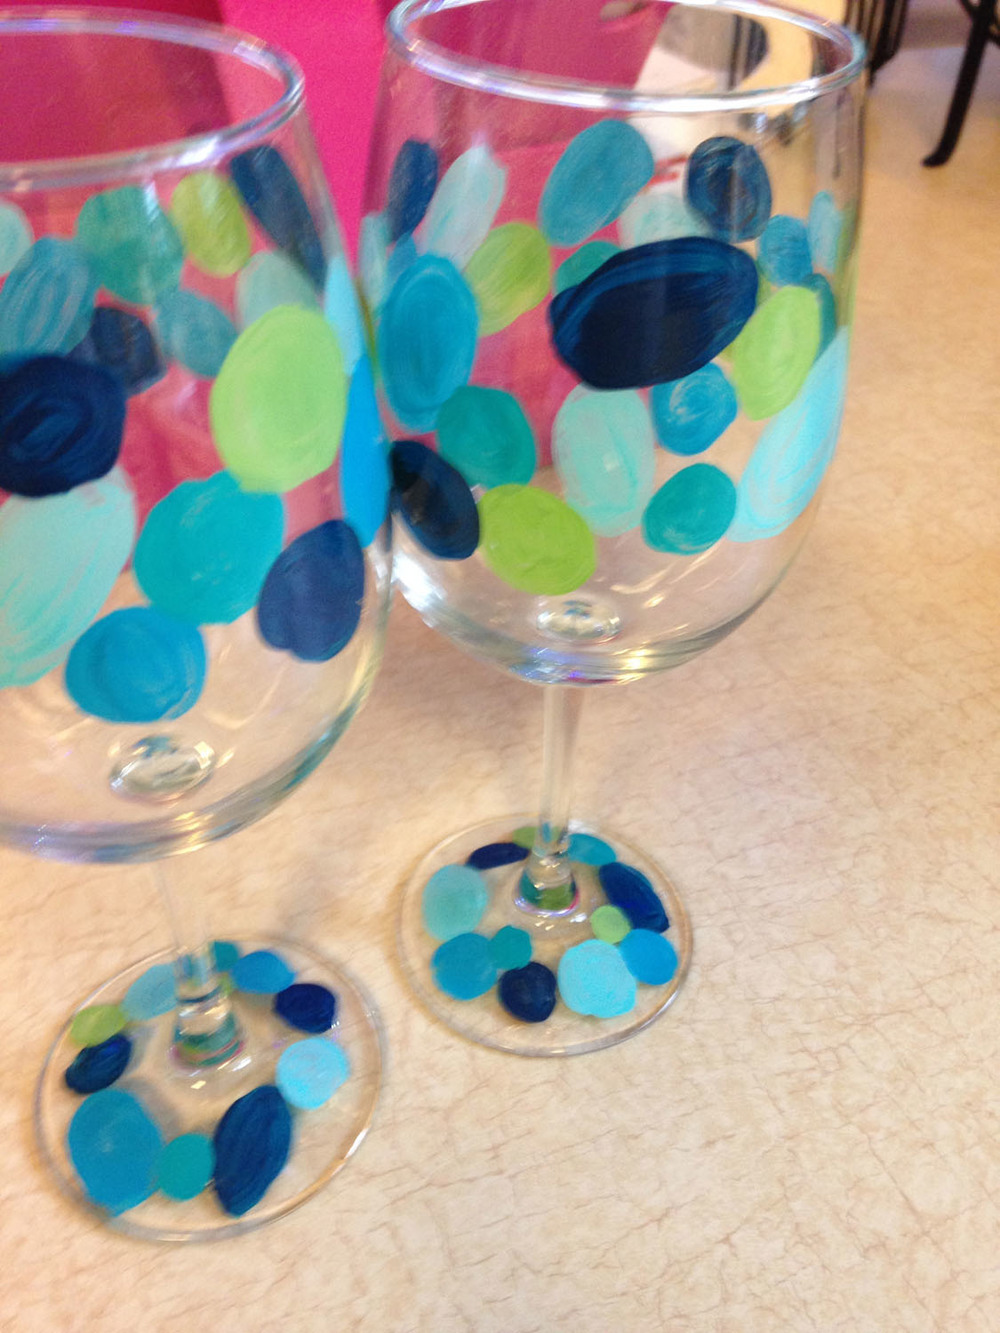 hand-painted-wine-glasses-circle-design-art-by-tjm-studio-greensboro-img_0187.jpg